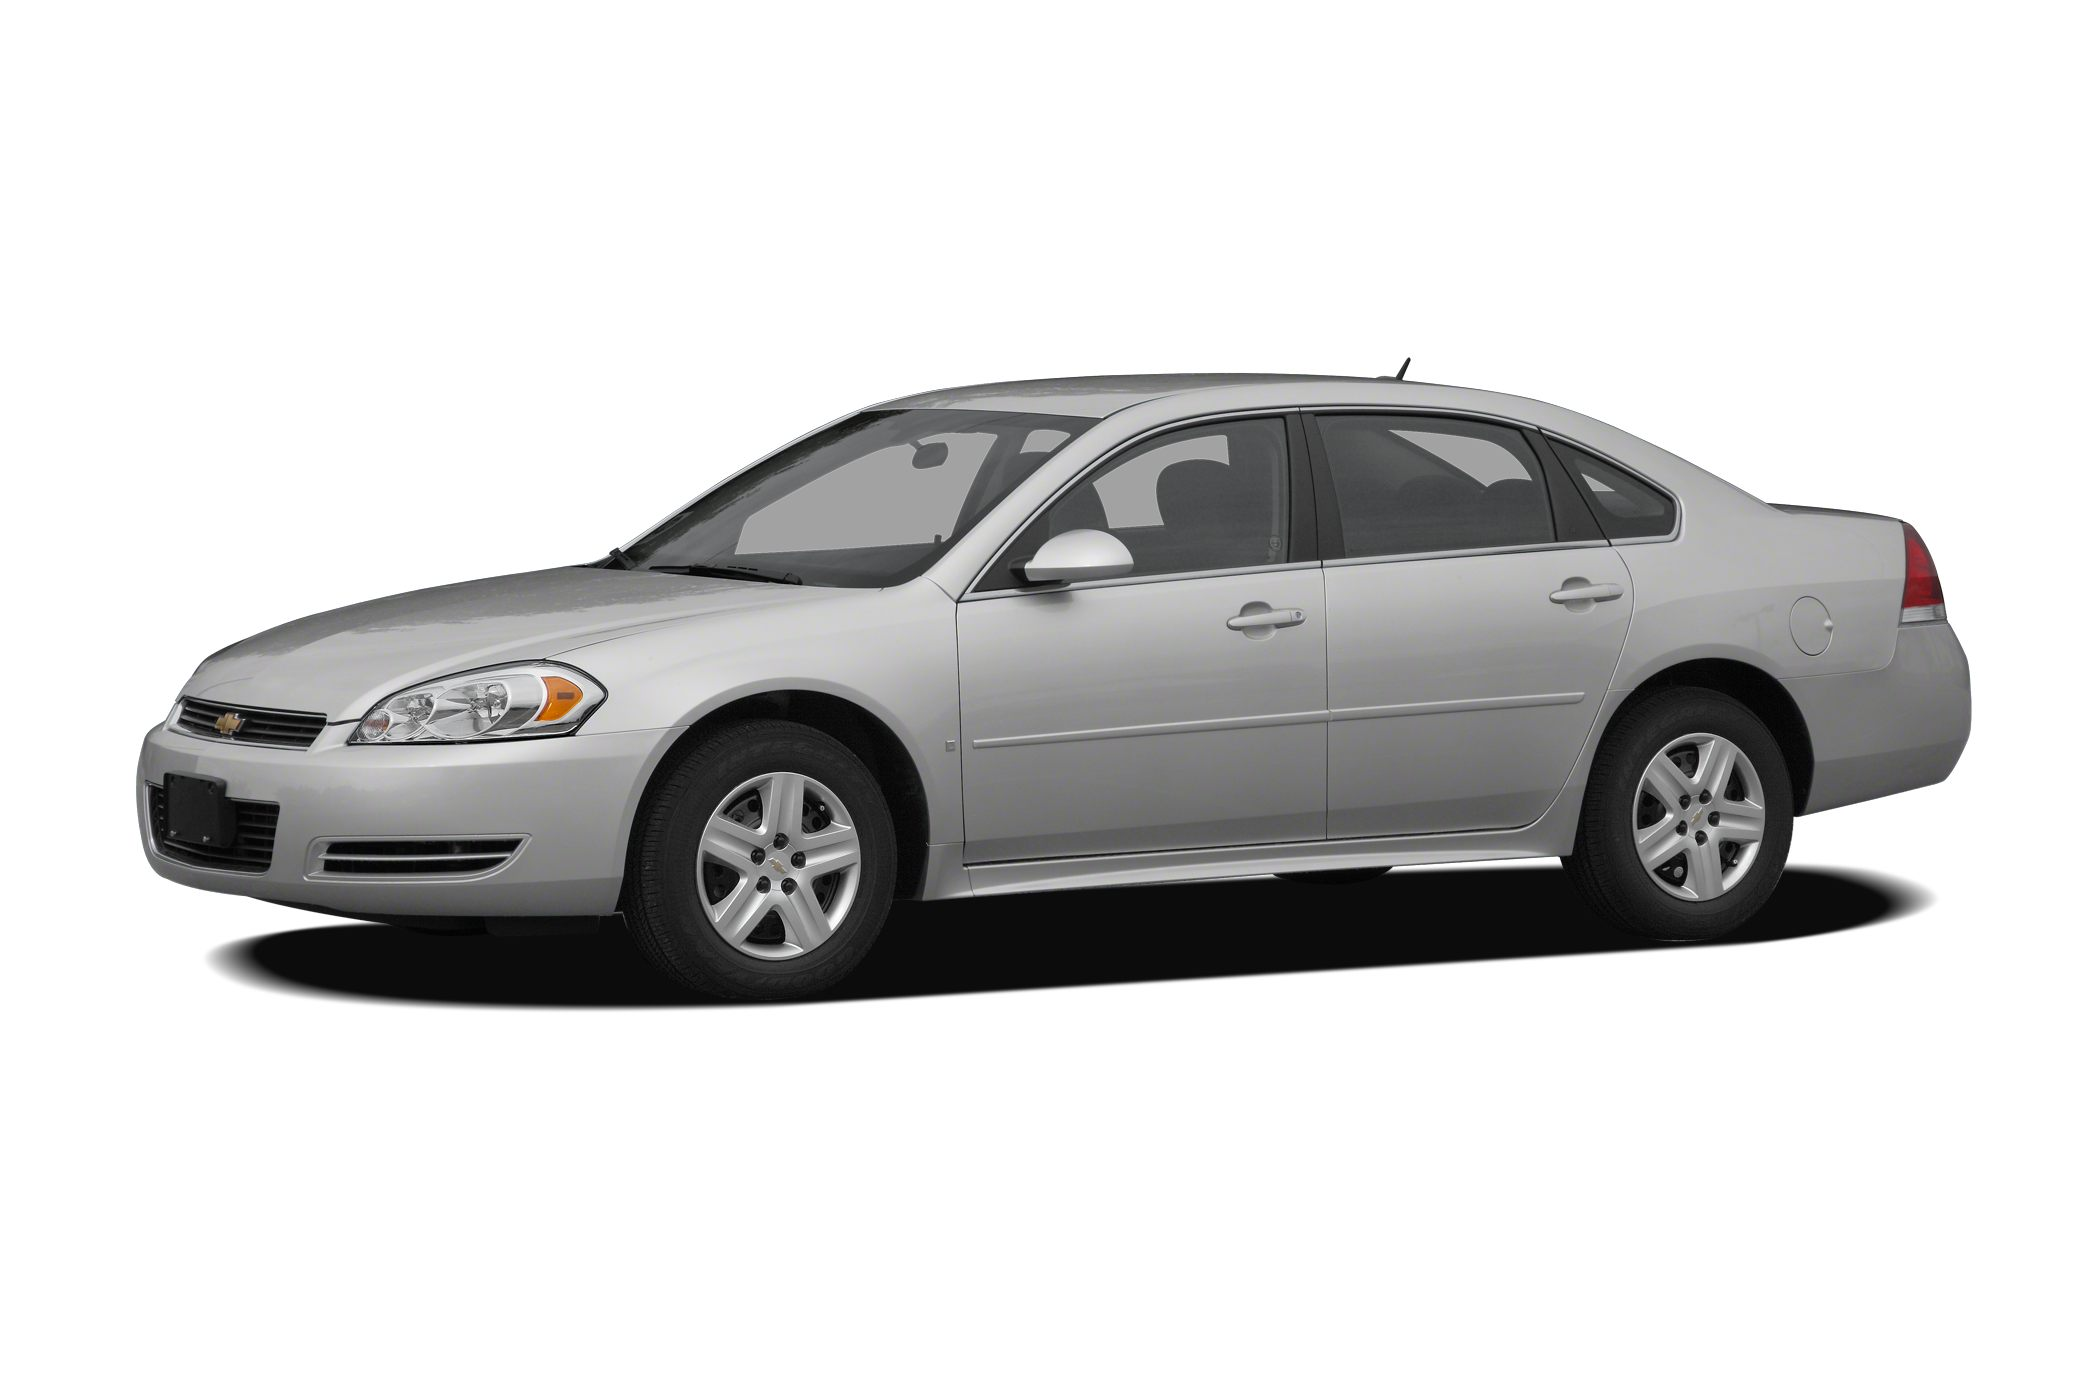 2010 Chevrolet Impala LTZ Sedan for sale in Oconto for $11,995 with 71,293 miles.